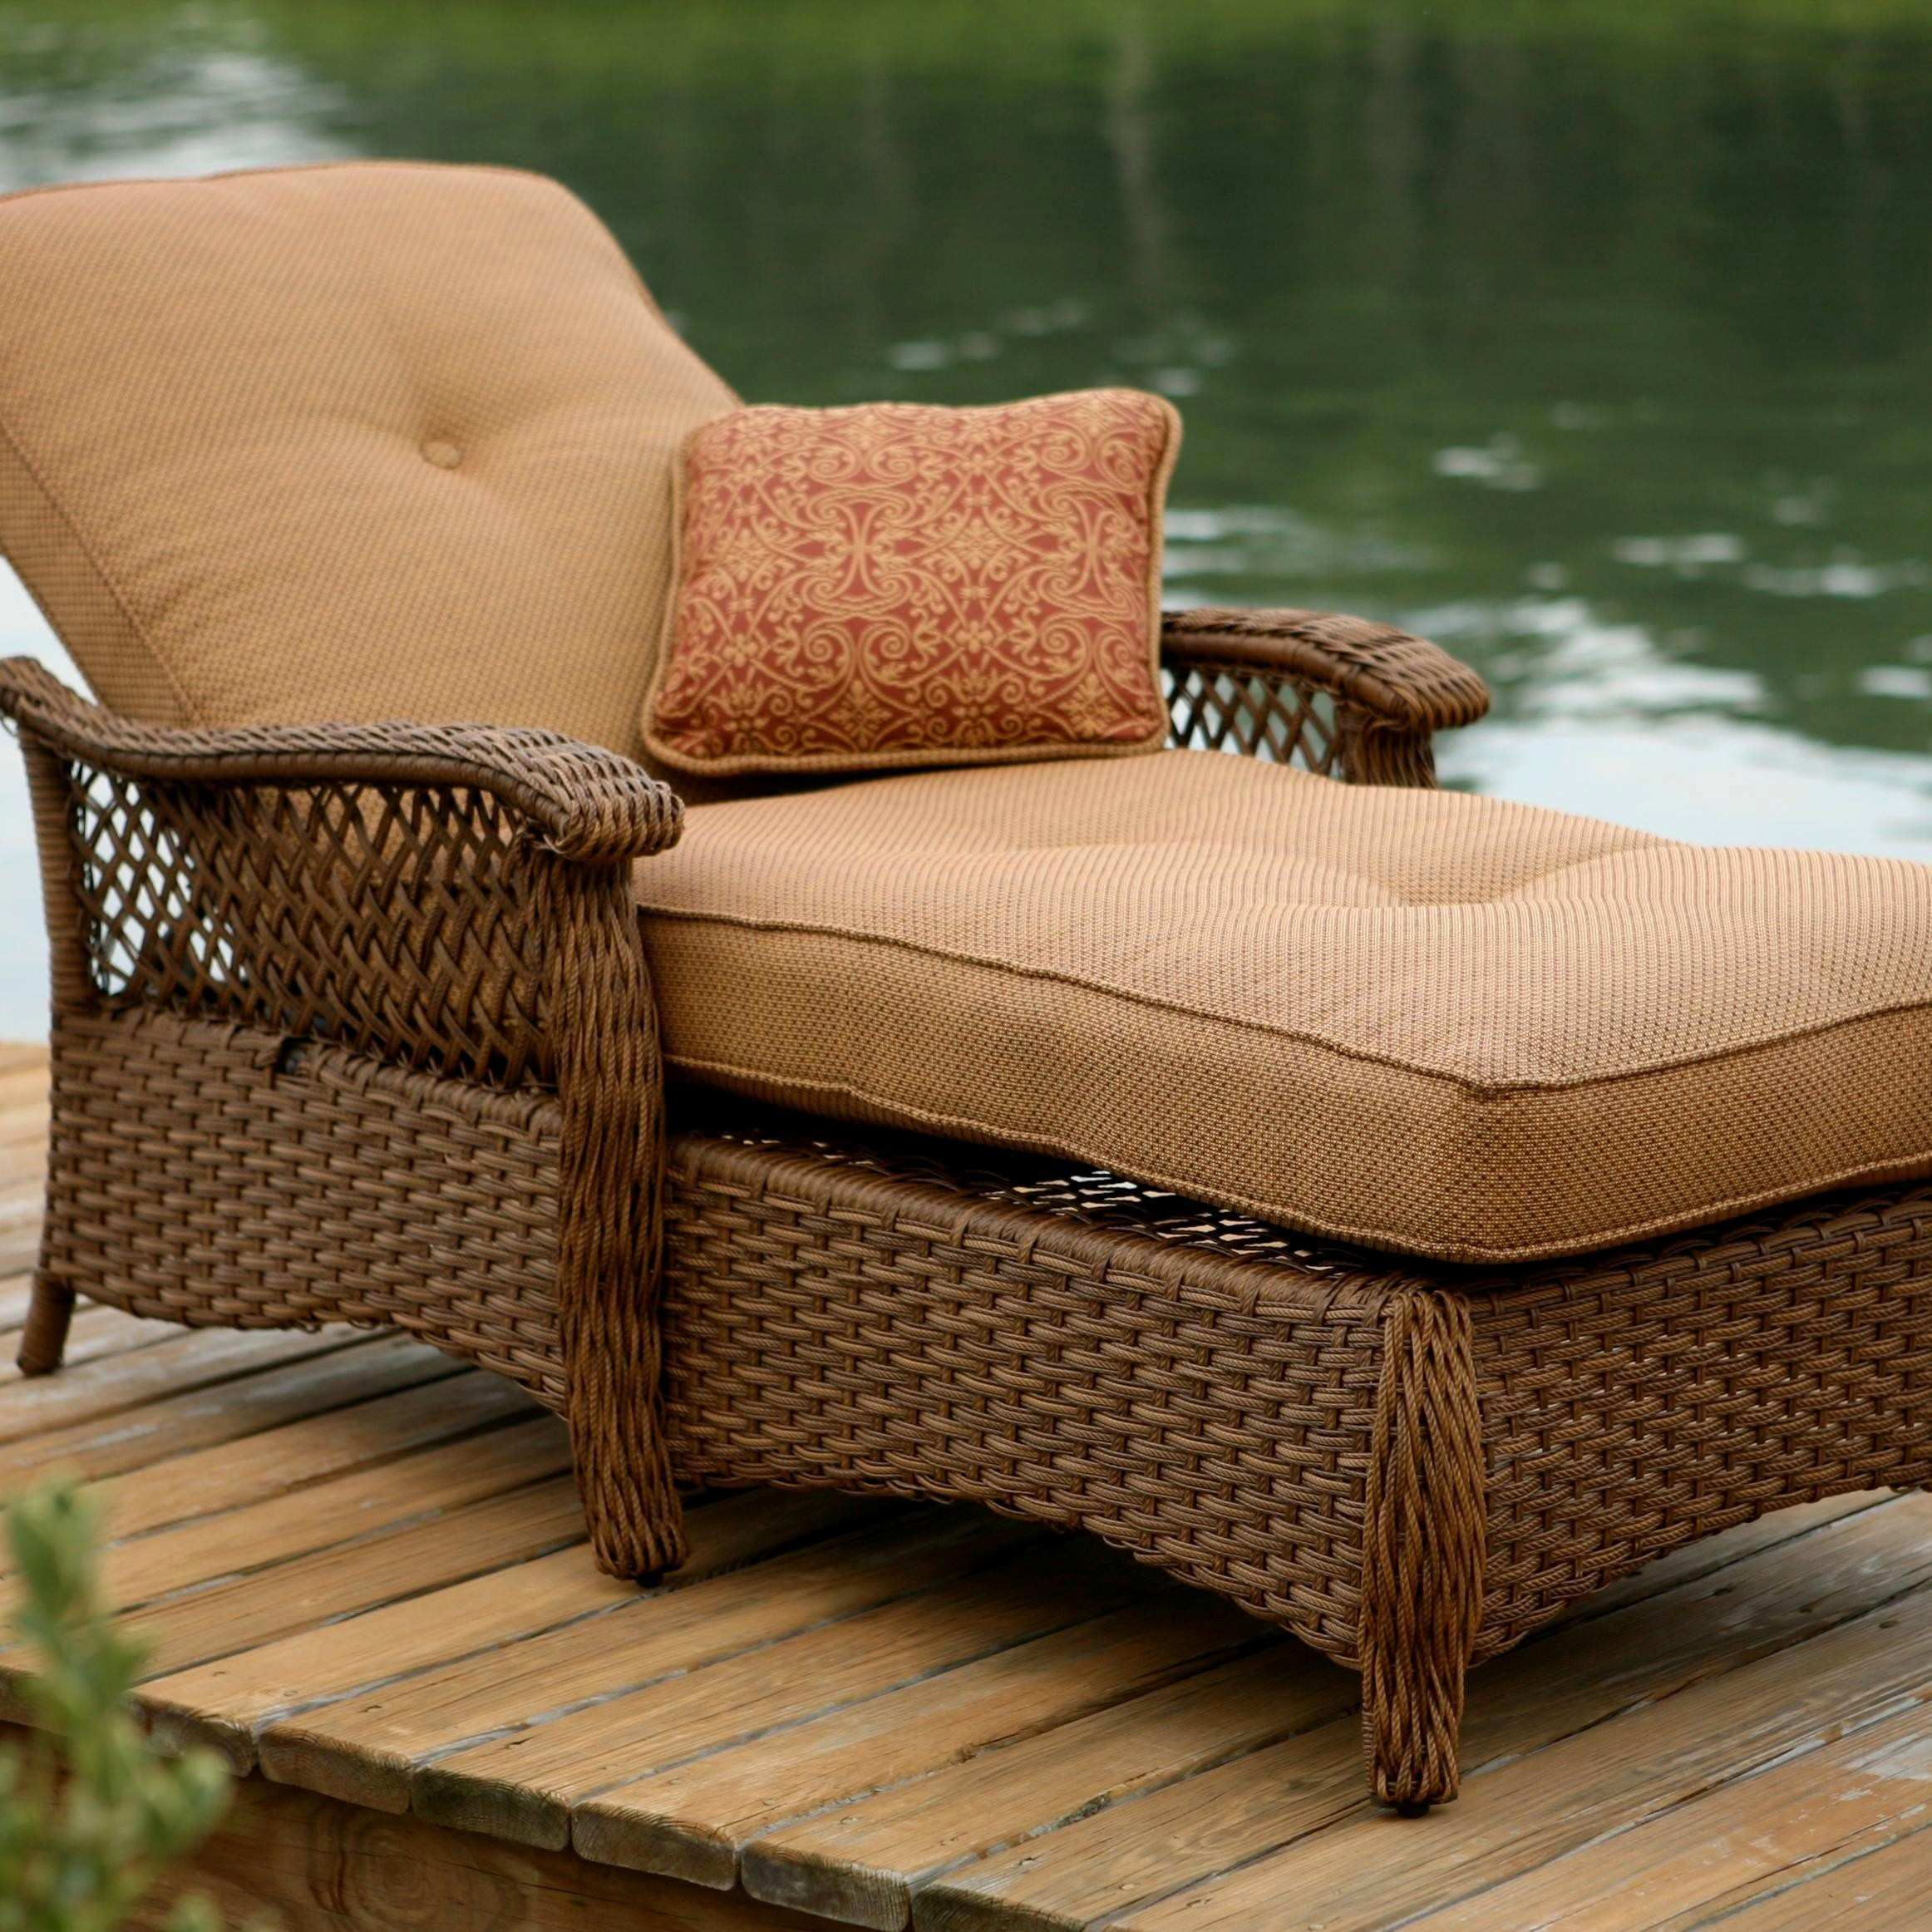 Extraordinary Outdoor Furniture Sale 15 Wicker Sofa 0d Patio Chairs